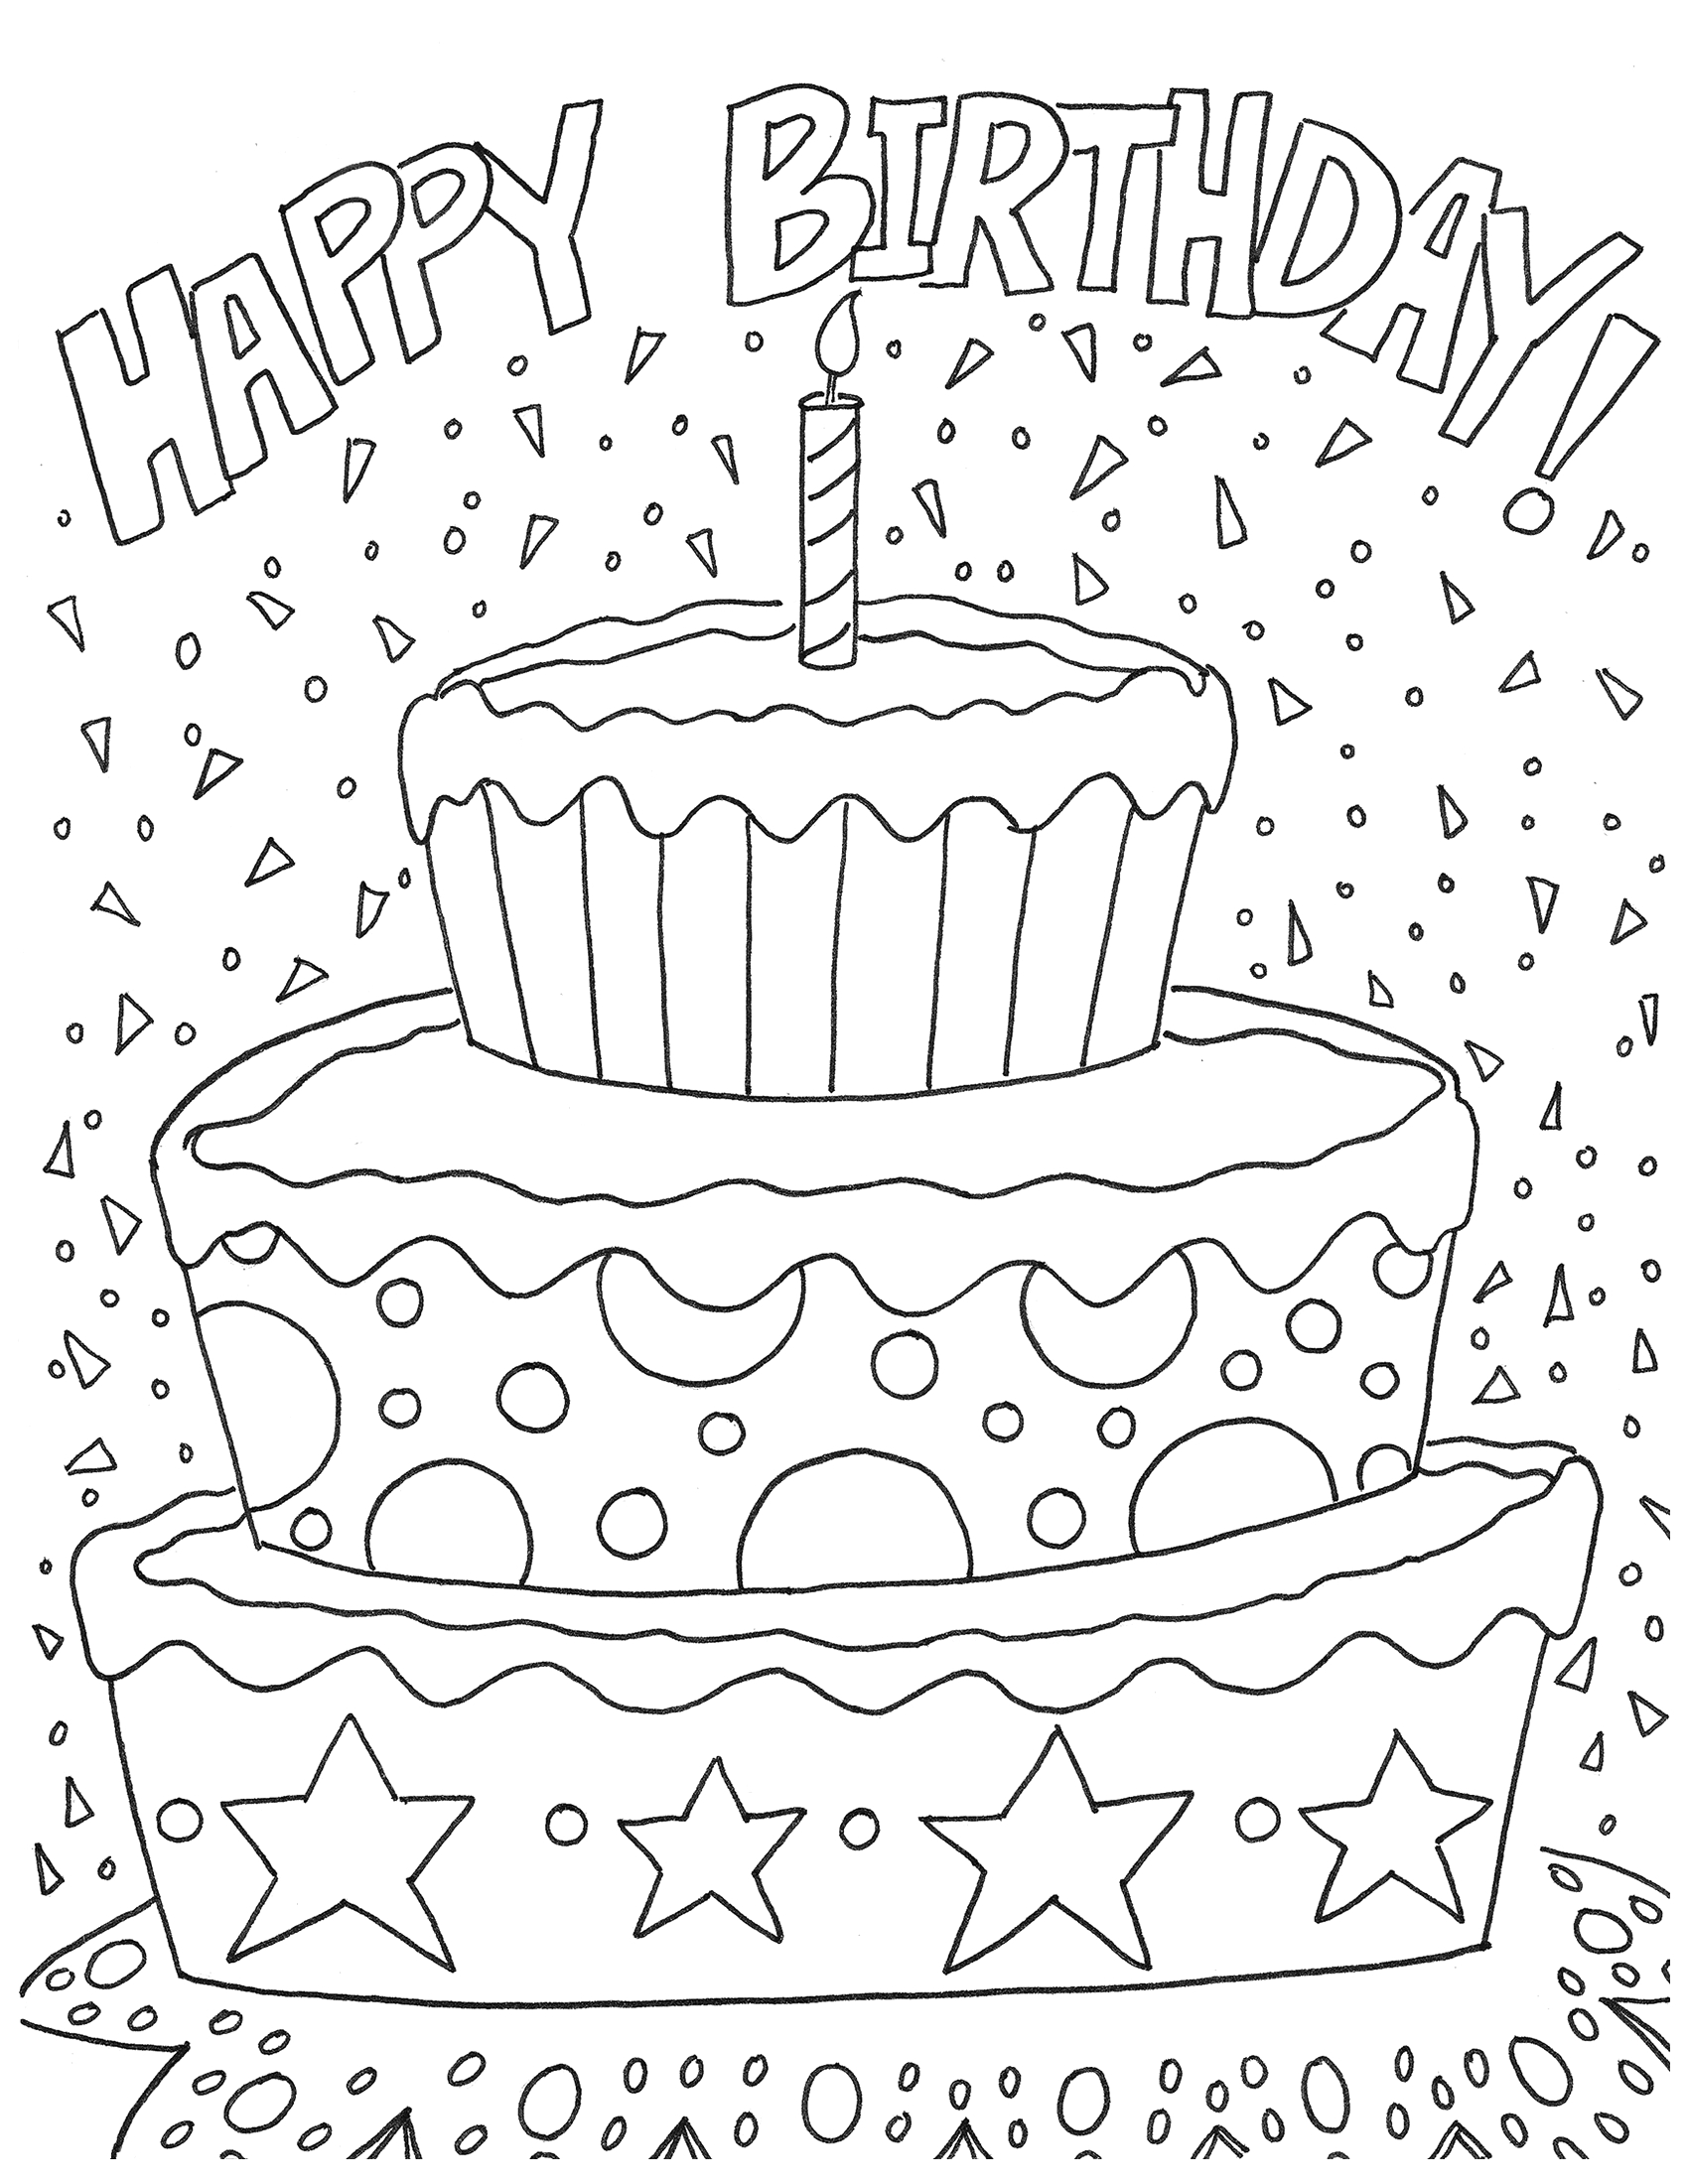 Printable Coloring Pages that Say Happy Birthday Free Happy Birthday Coloring Page and Hershey